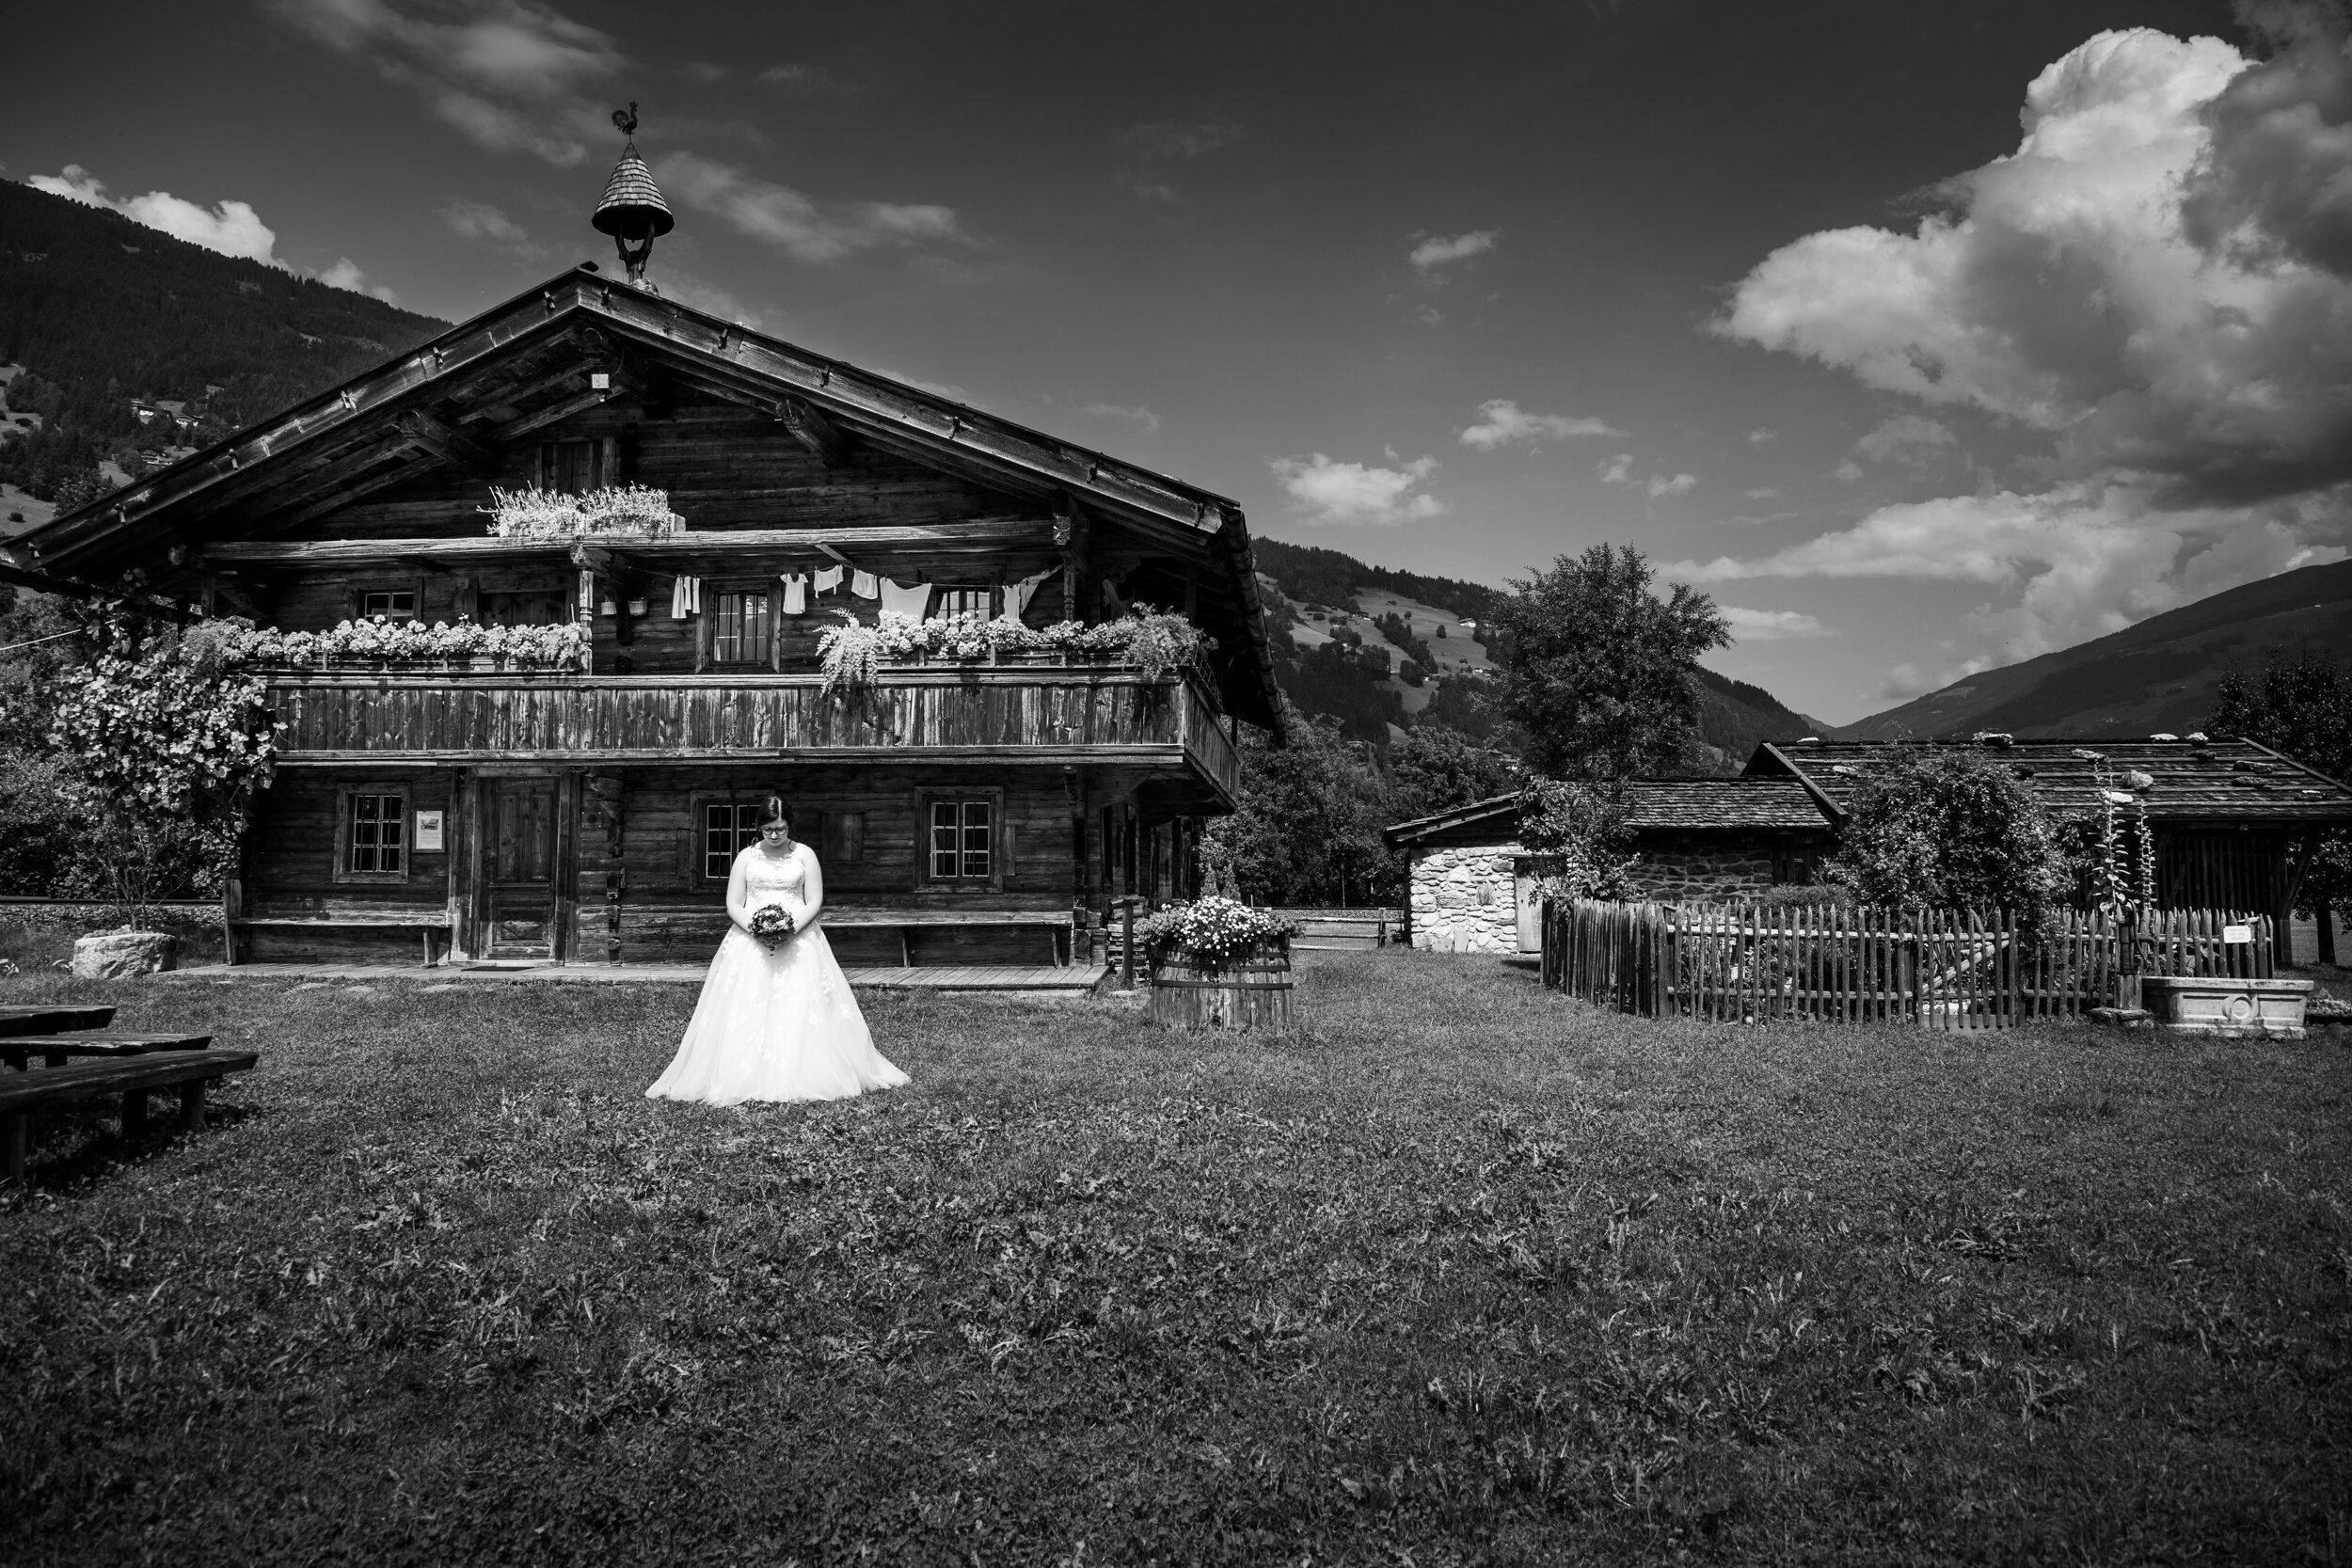 A bridal portrait that I took at the Zillertal Regional Museum